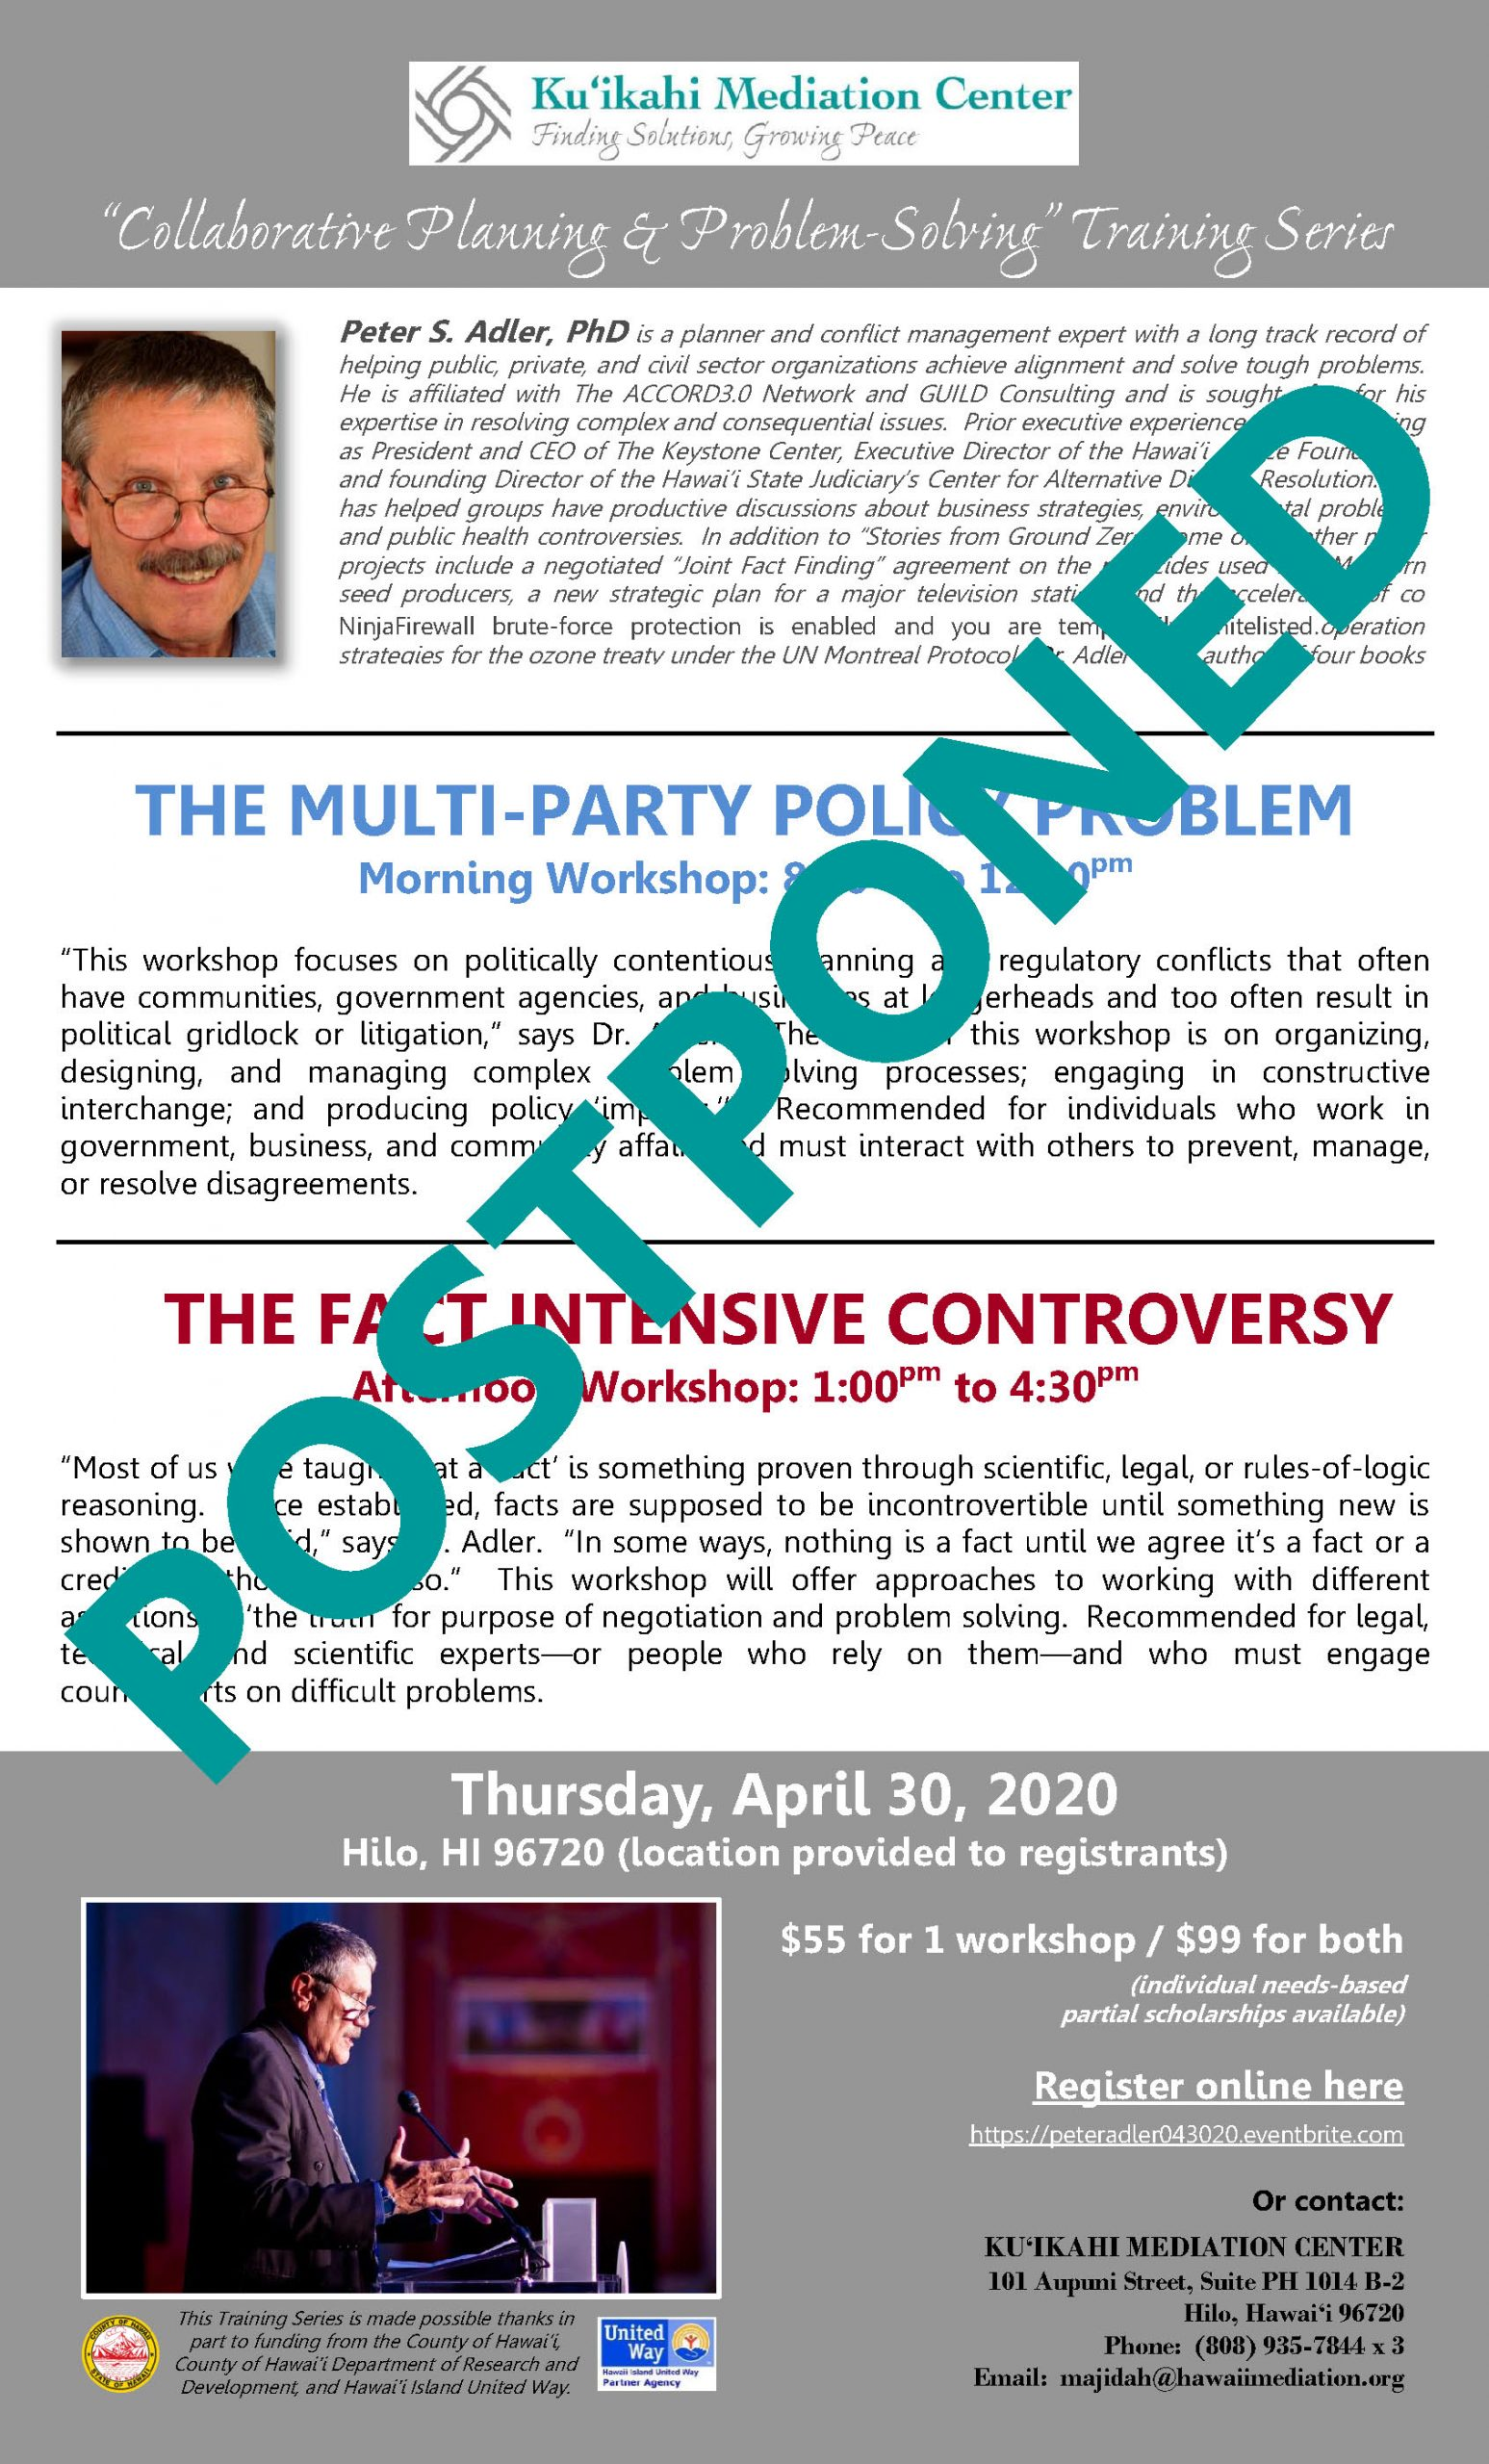 Flyer - Peter Adler Workshops 4-30-20 - POSTPONED